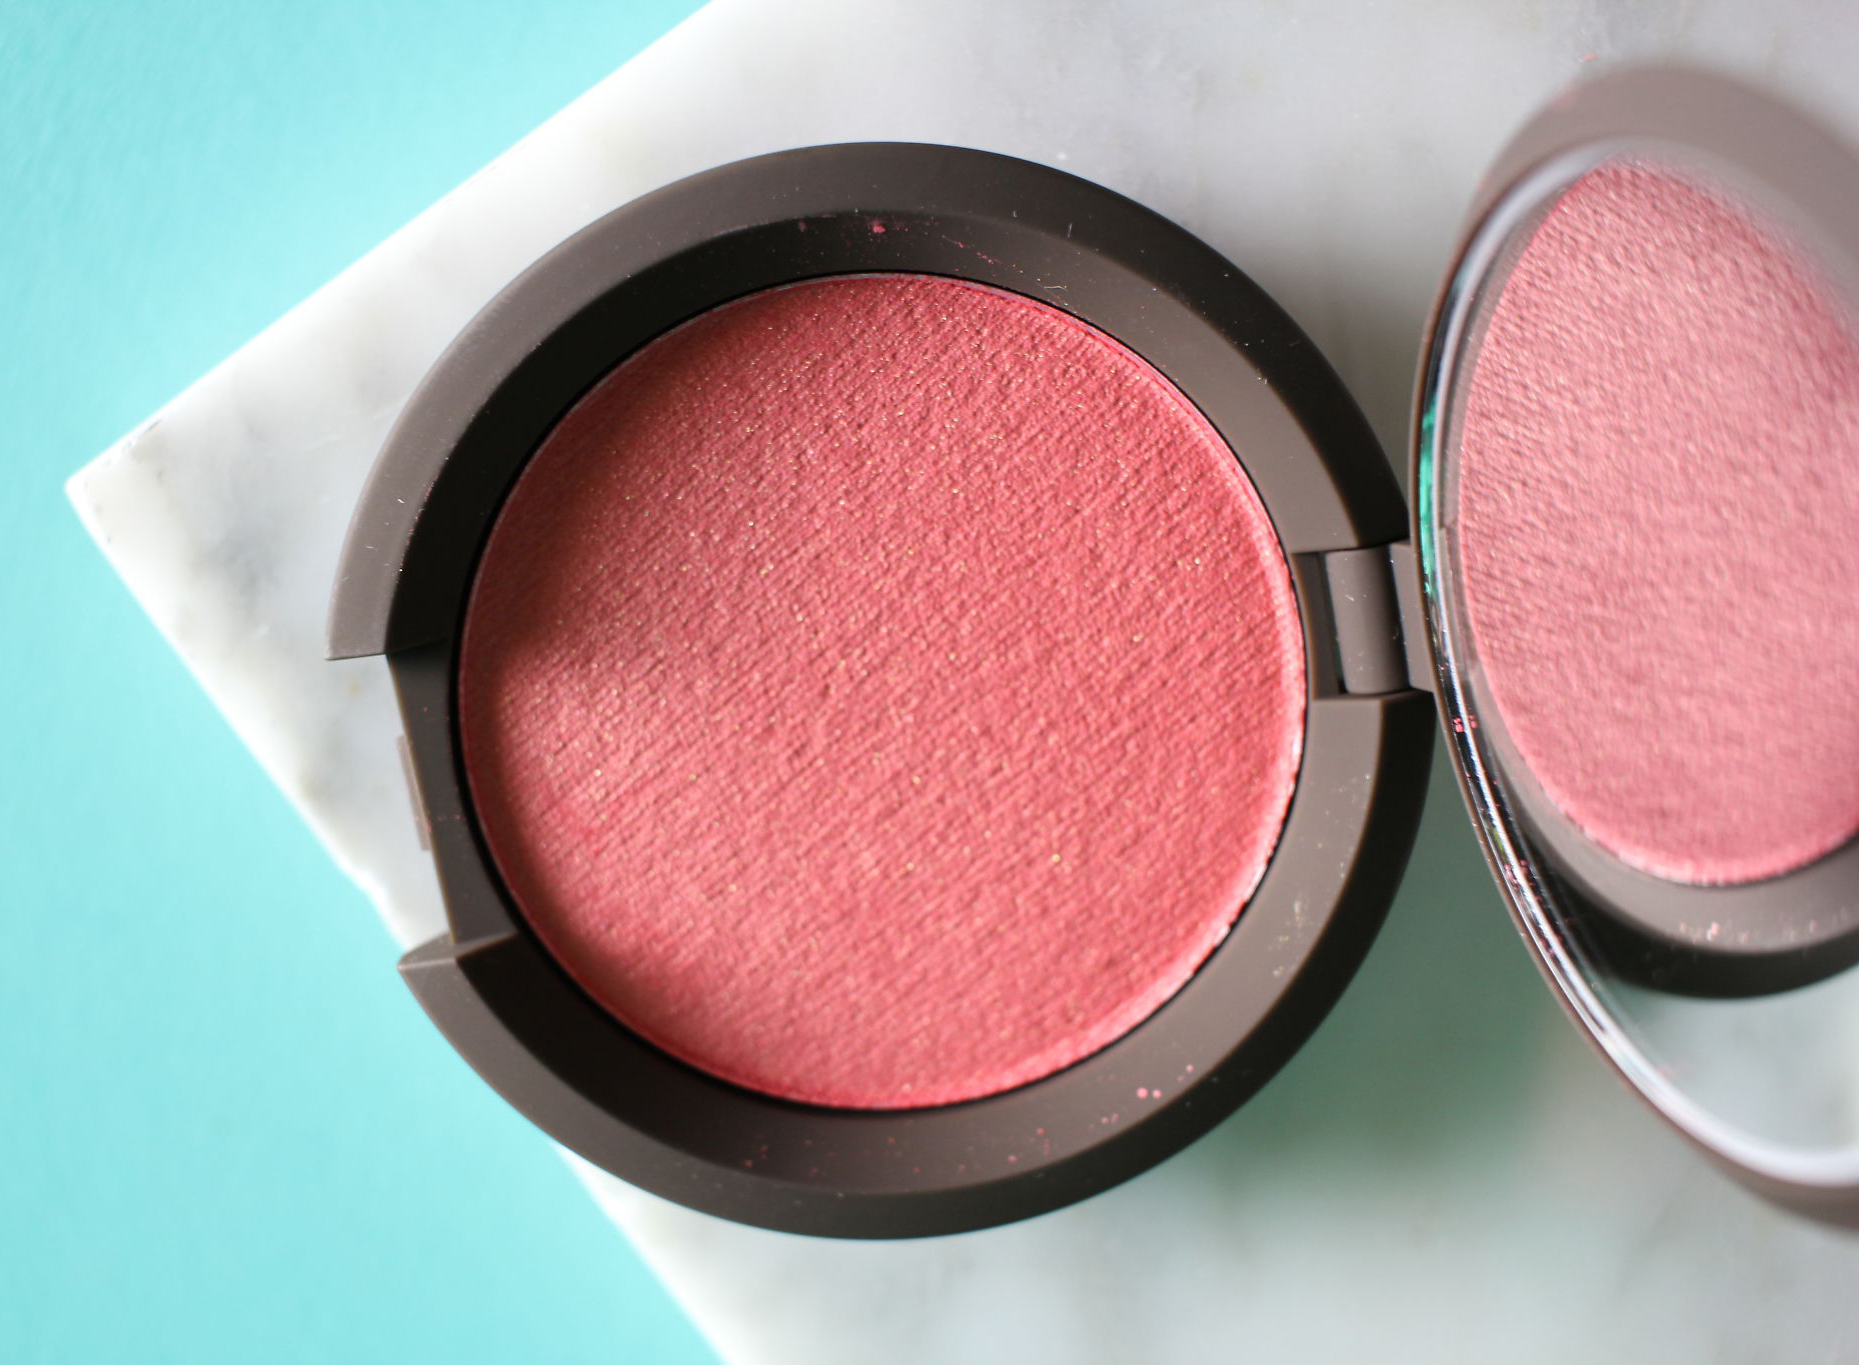 Becca Skin Perfector Luminous Blush, Snapdragon